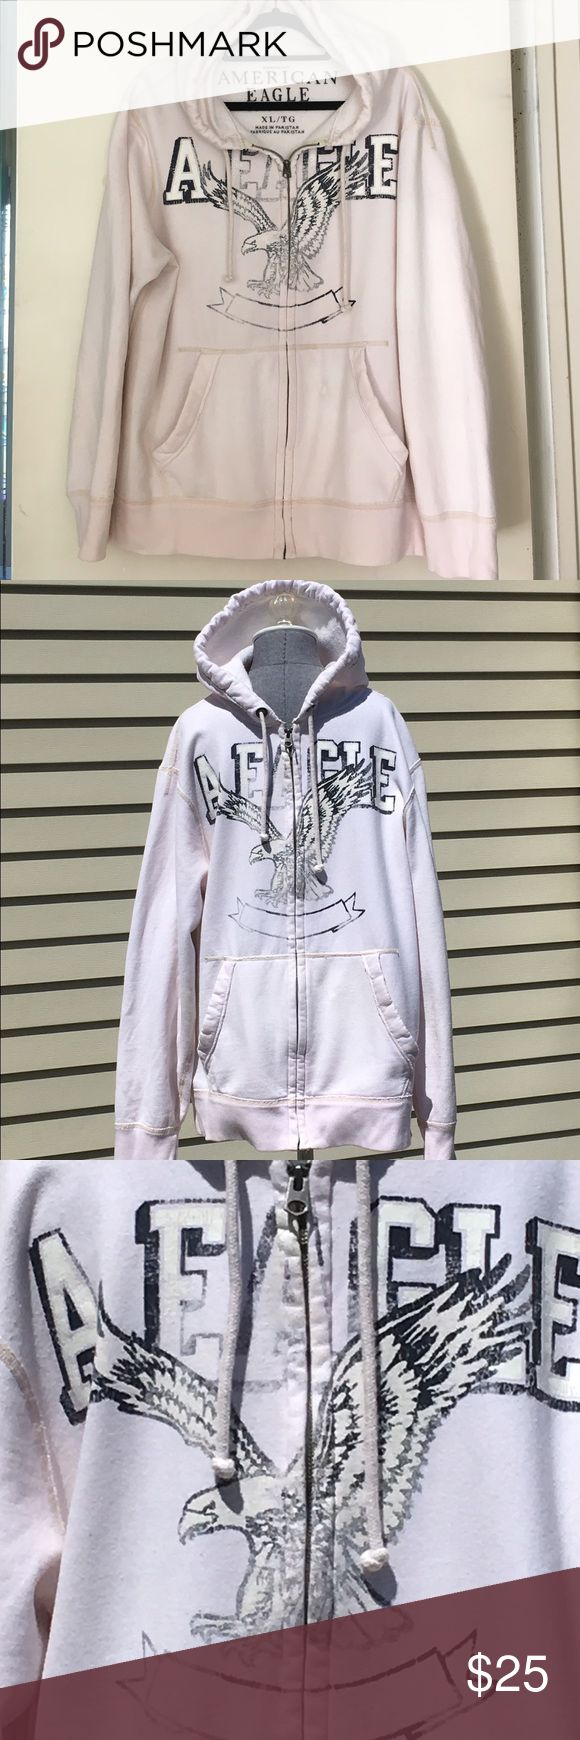 American Eagle Outfitters Off White Zip Up Hoodie American Eagle Outfitters Off White Zip Up Hoodie Size XL. Off White Hoodie with Distressed Blue & White Lettering on Front. 🚫Trades American Eagle Outfitters Shirts Sweatshirts & Hoodies